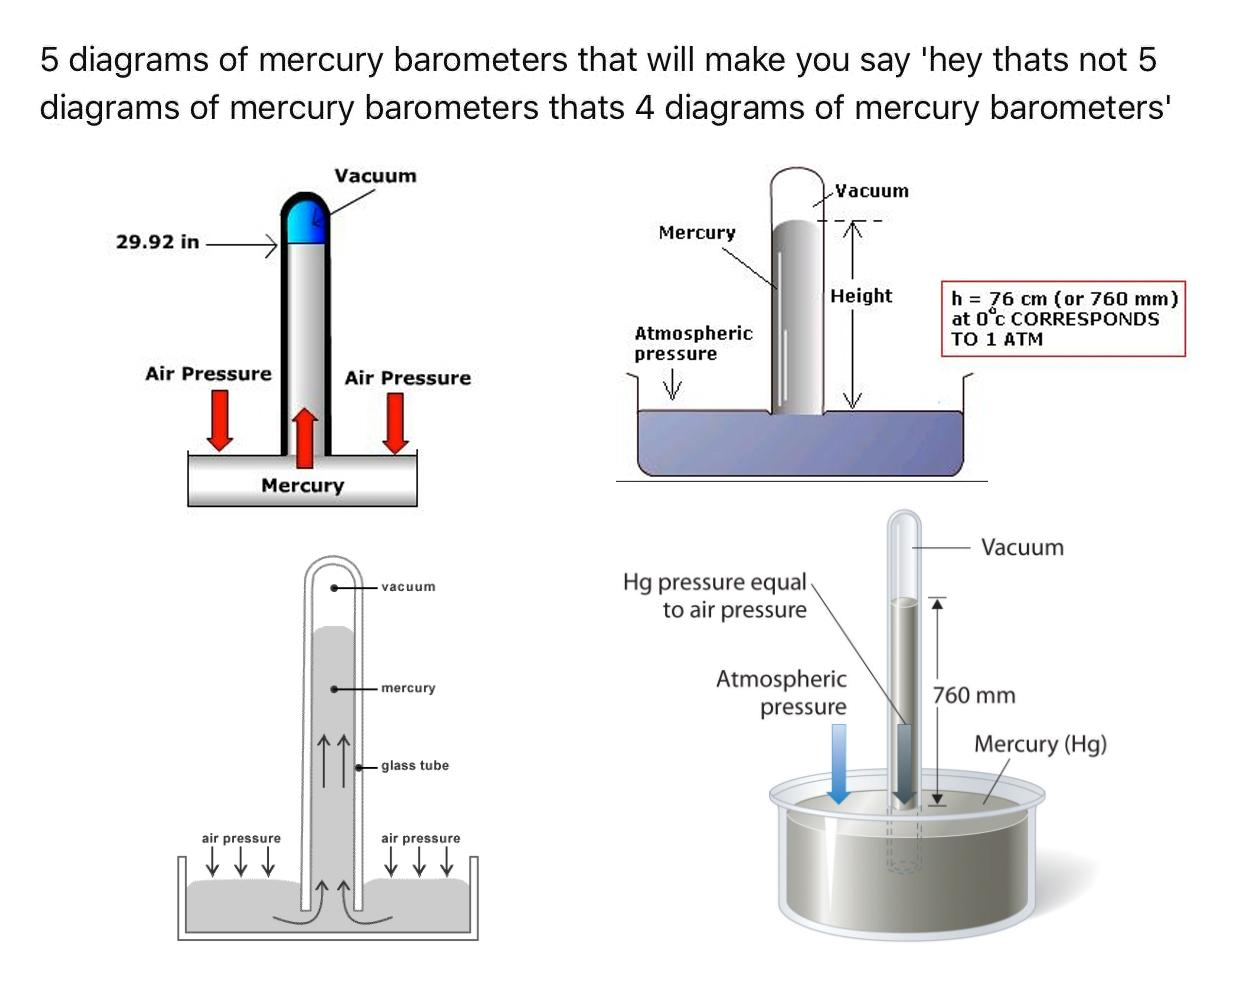 hight resolution of 5 diagrams of mercury barometers dankmemes diagram mercury barometer